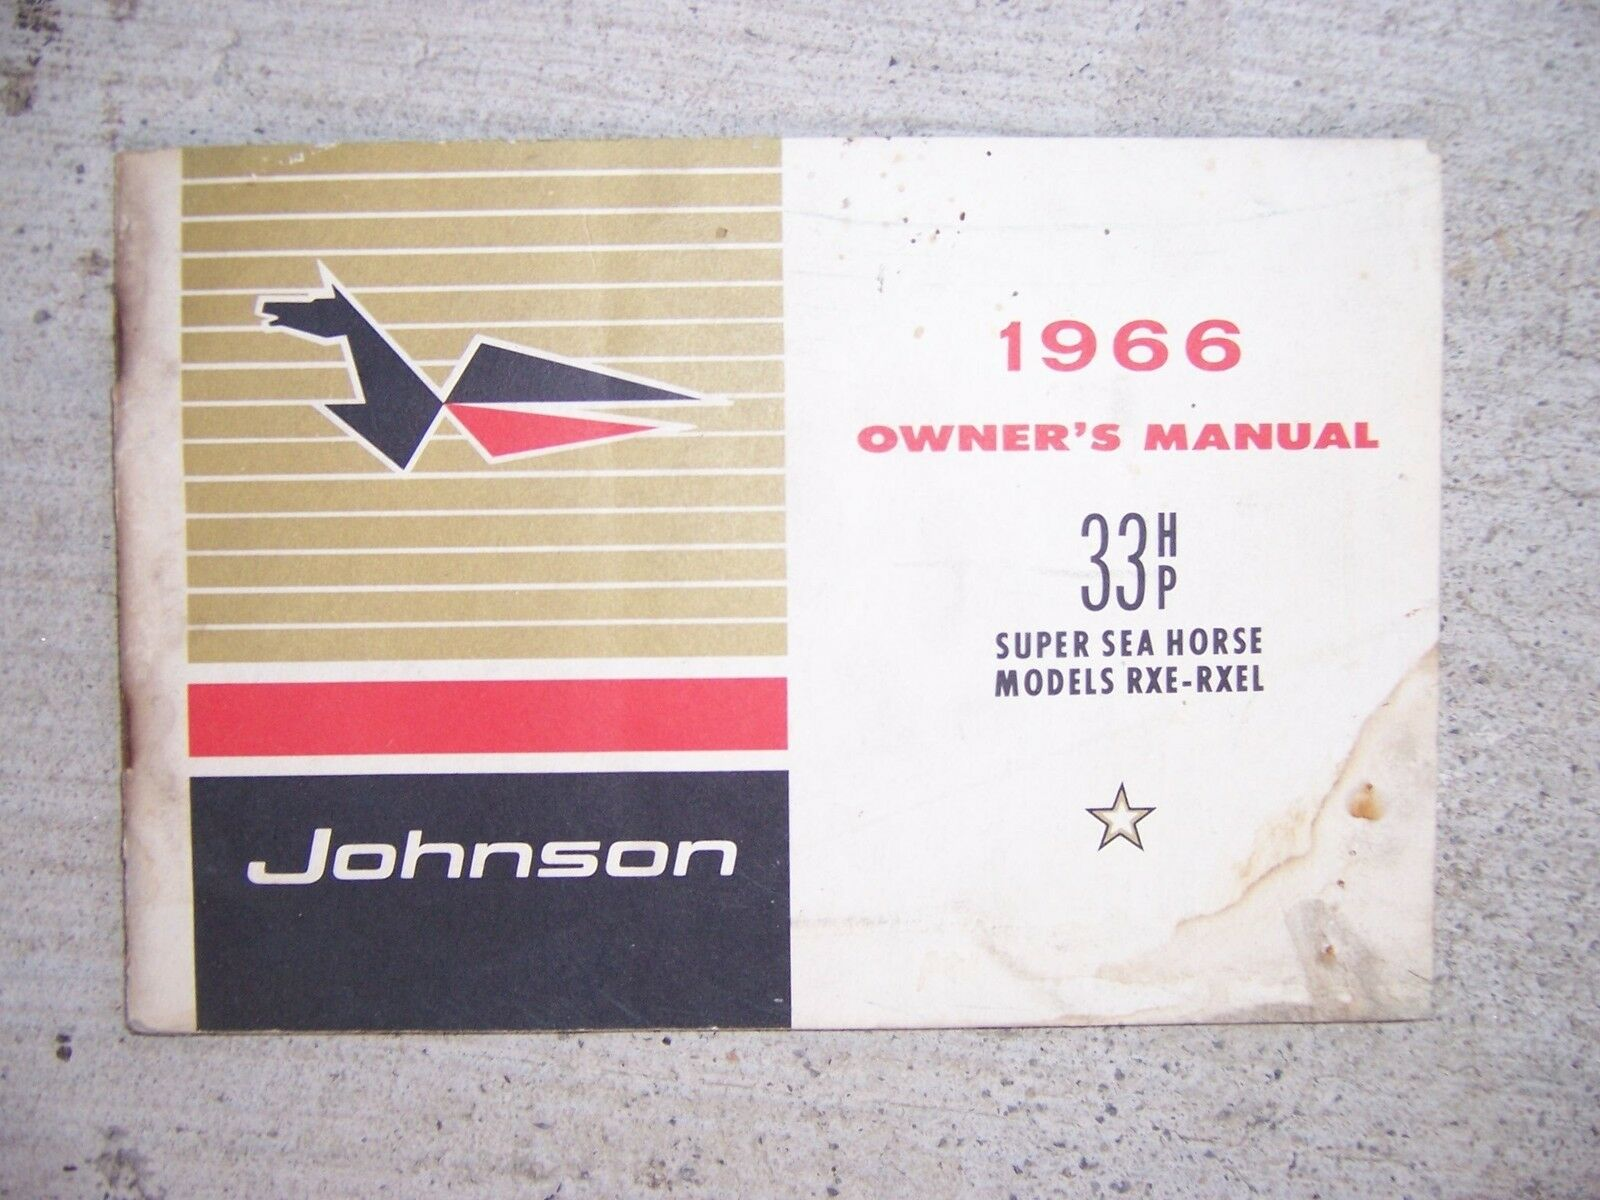 1966 Johnson Super Sea Horse 33 Hp Rxe Rxel Outboard Motor Owner Wiring Diagram Manual S 1 Of 1only Available